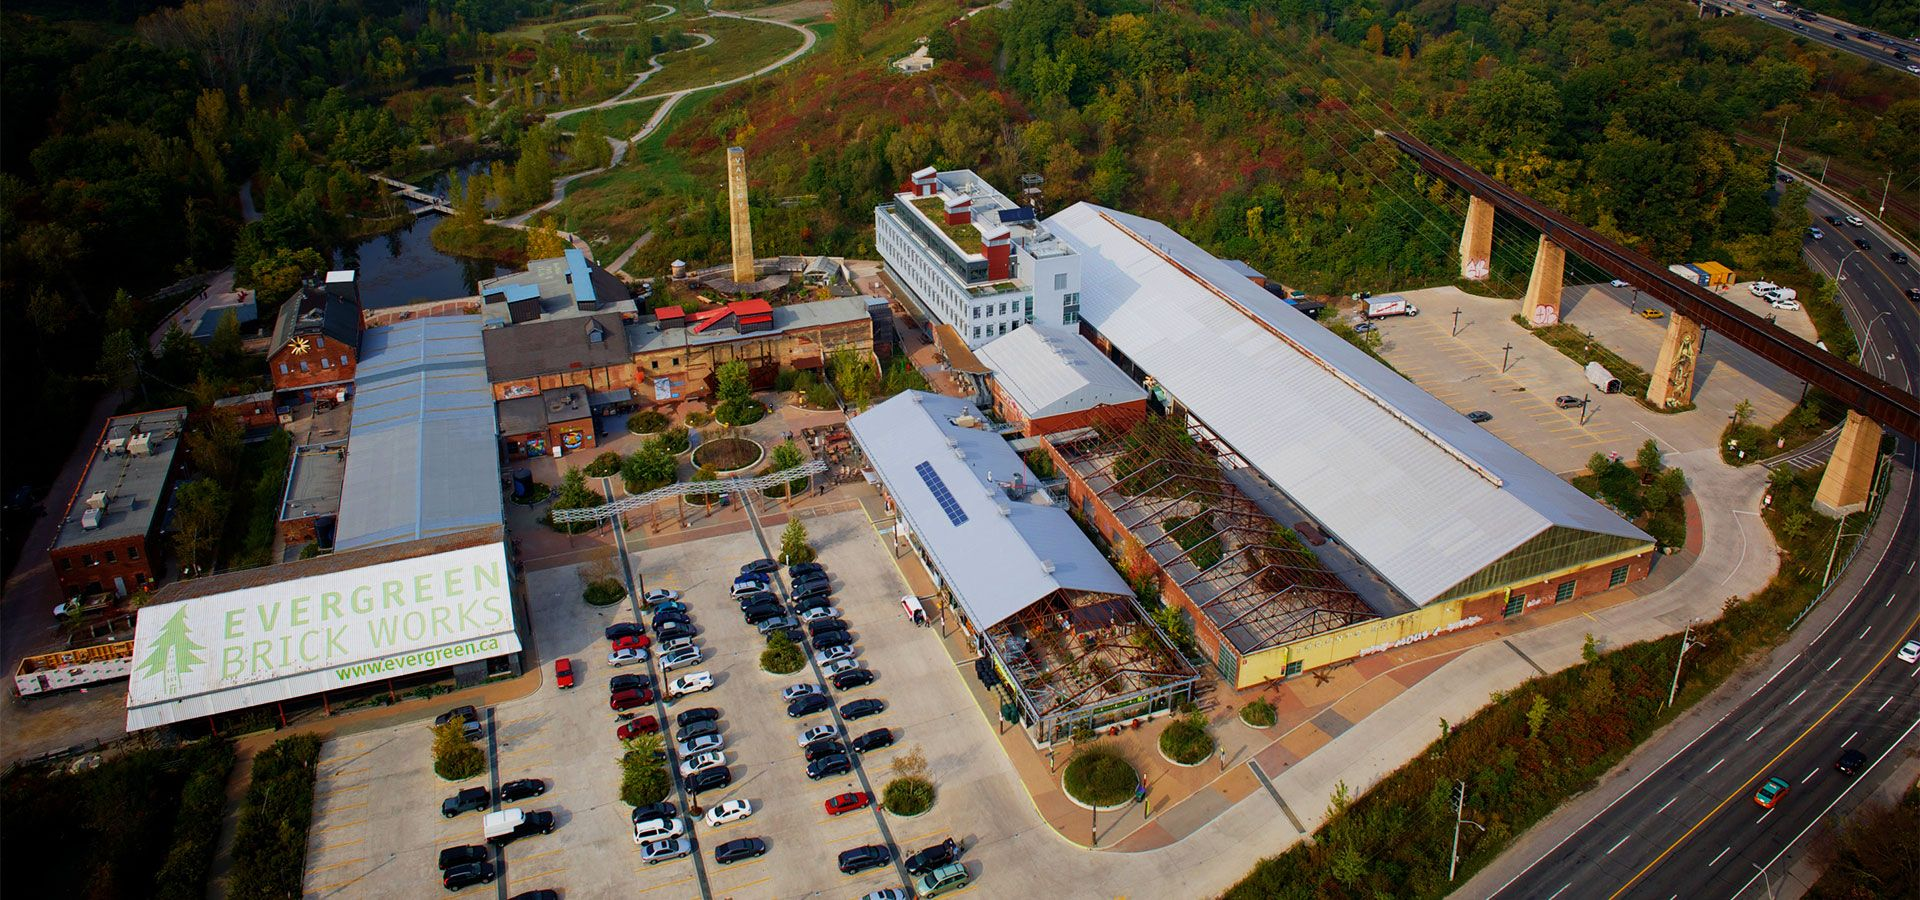 An aerial photo of Evergreen Brick Works.